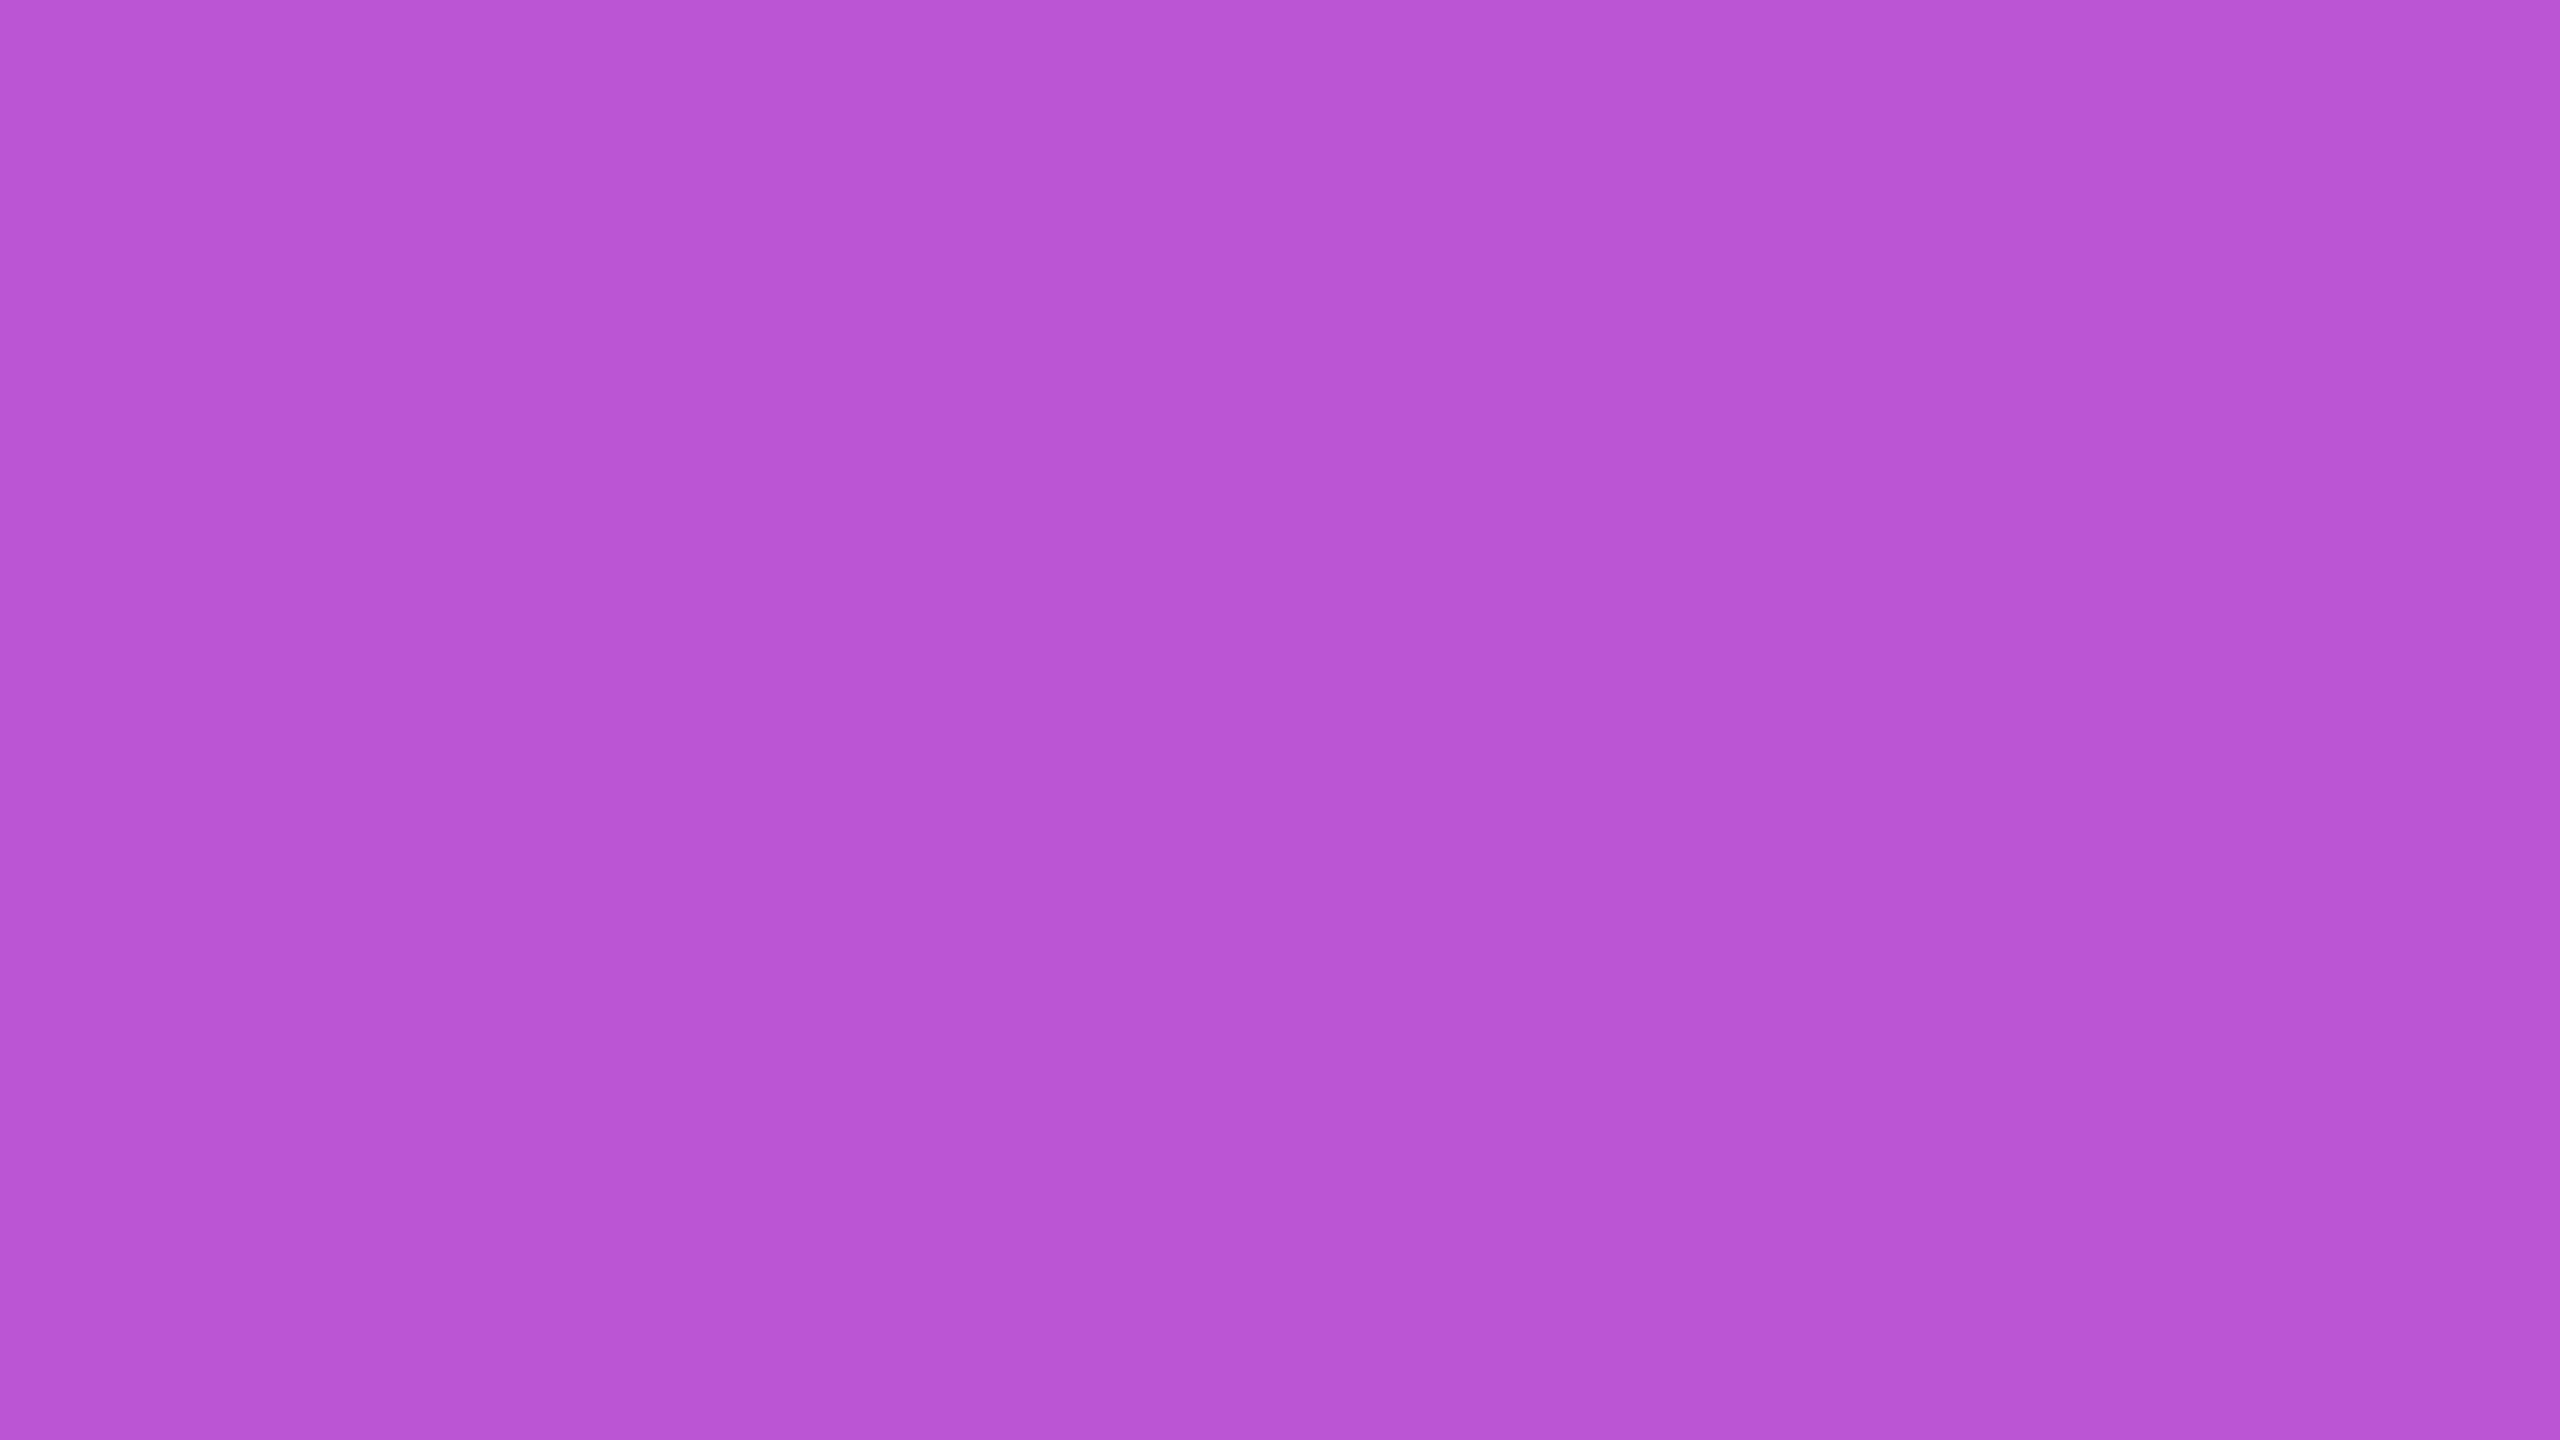 2560x1440 Medium Orchid Solid Color Background